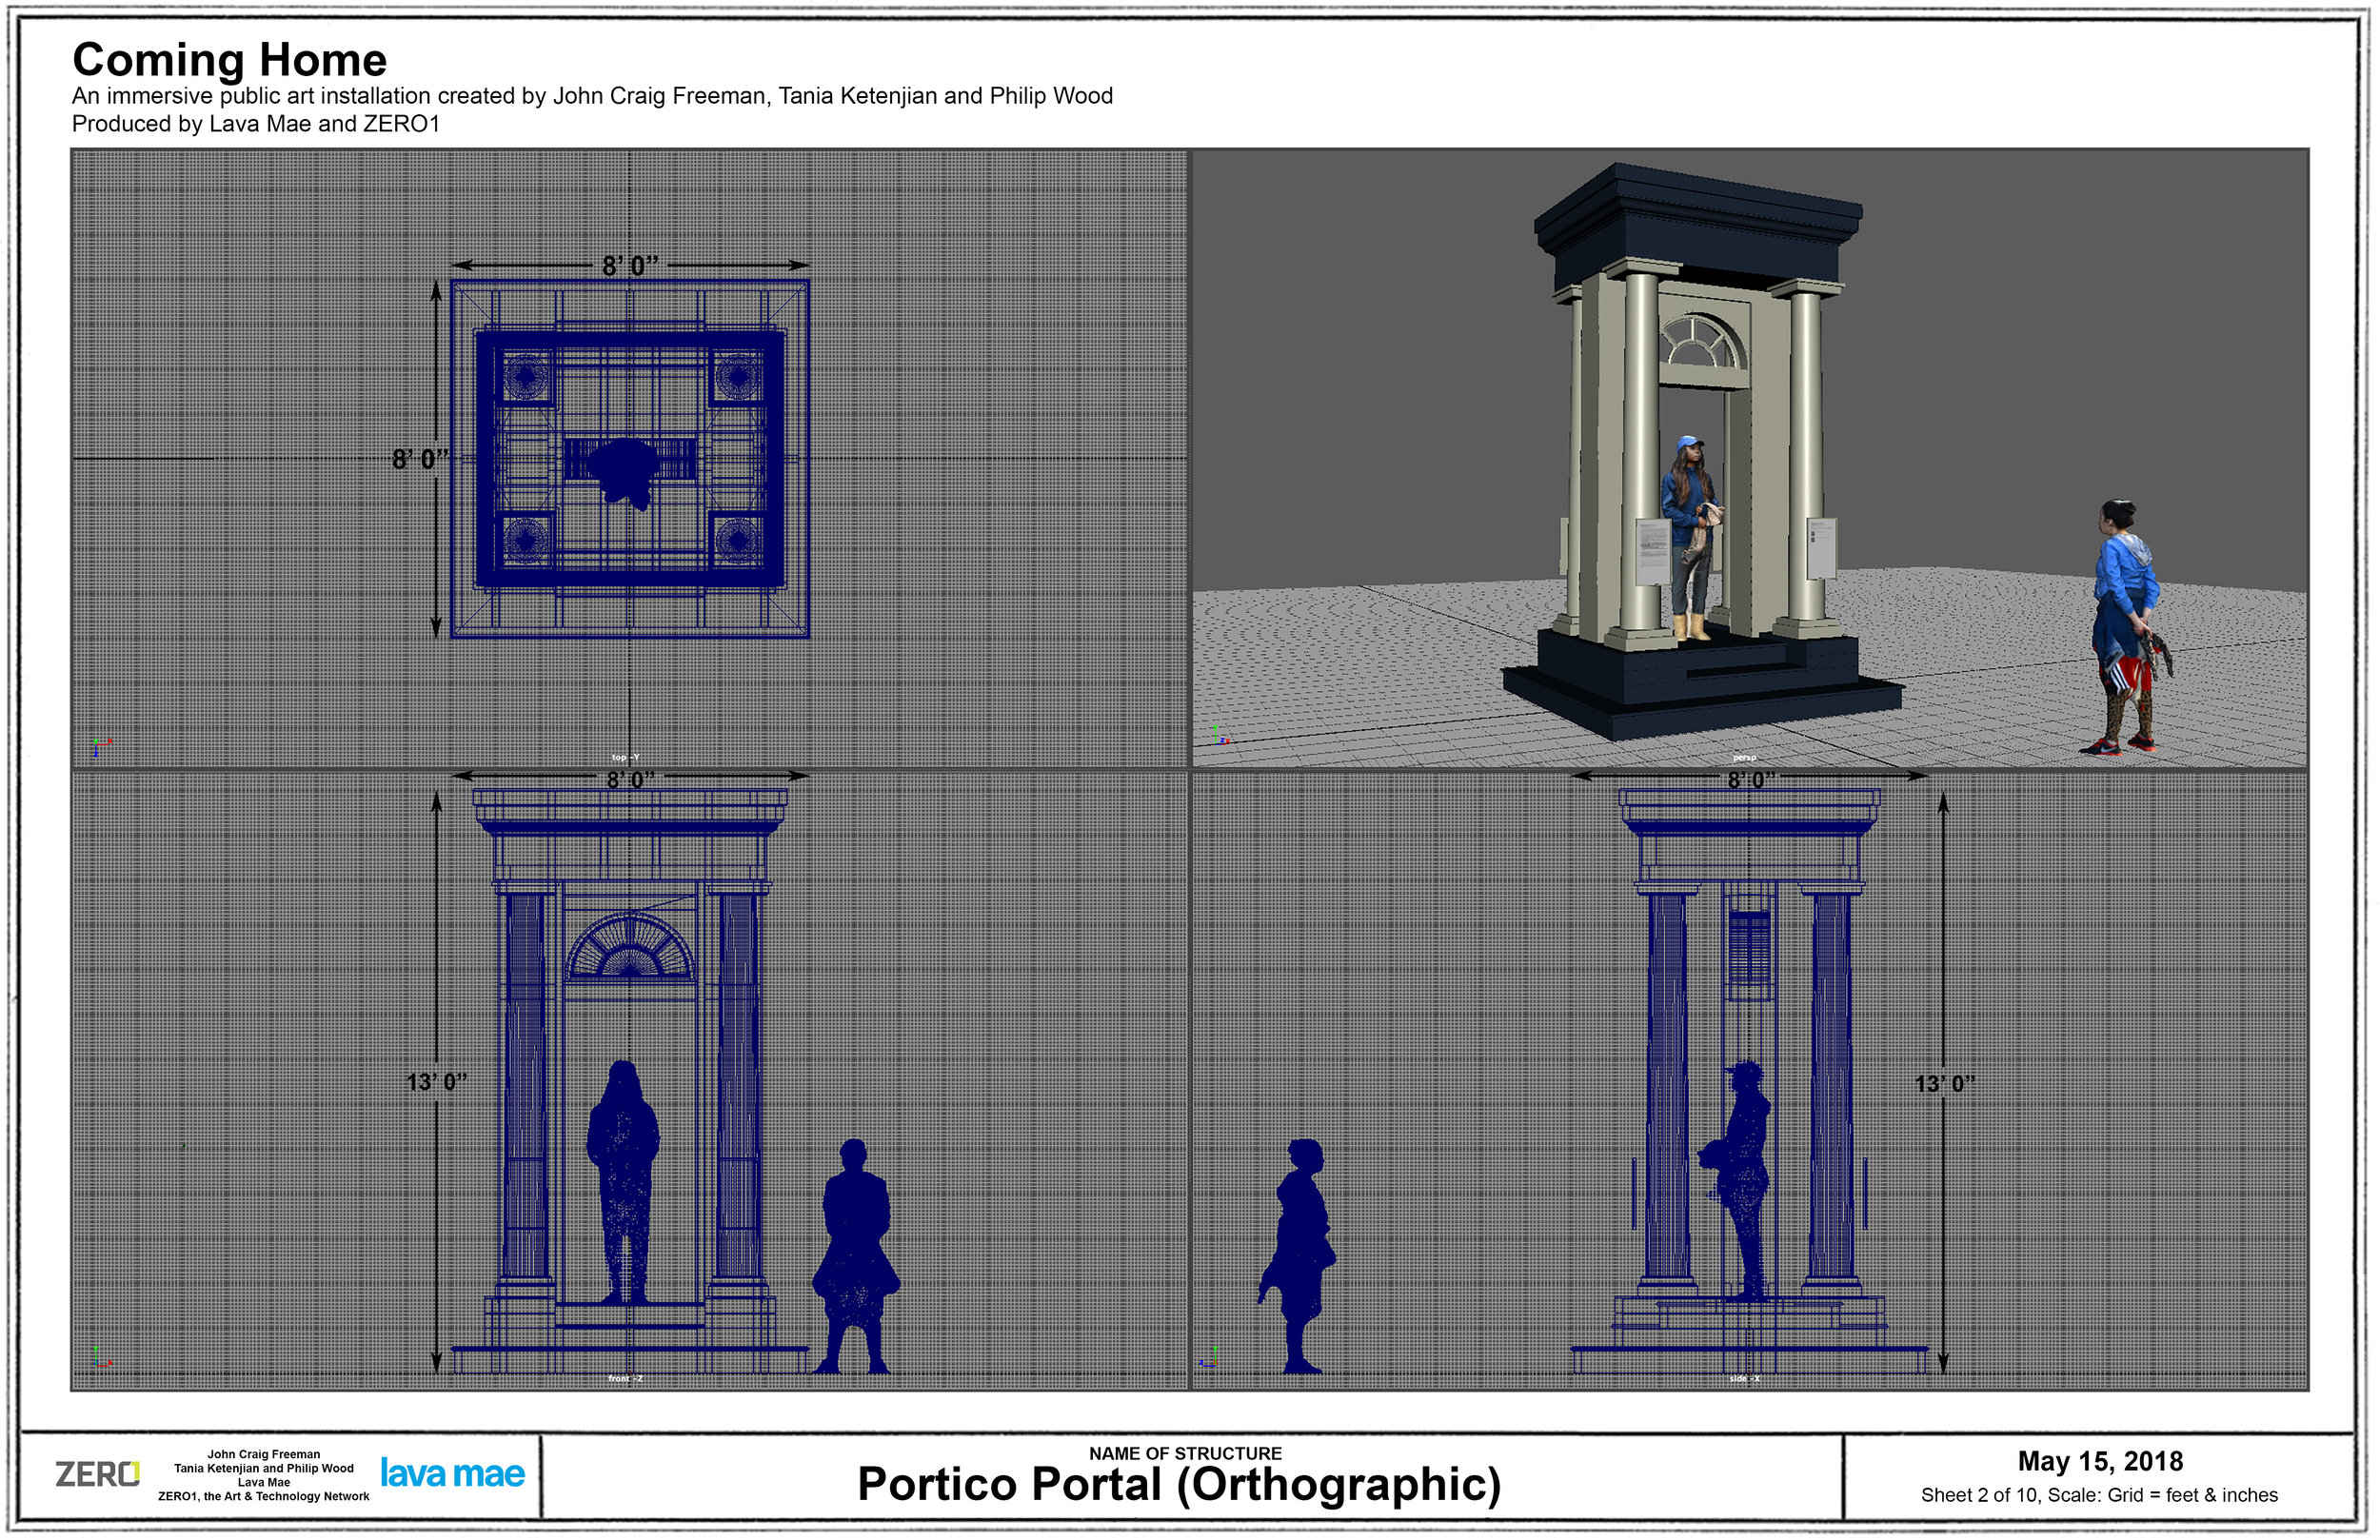 Portico_Portal_Plans_2_of_10_Orthographic.jpg